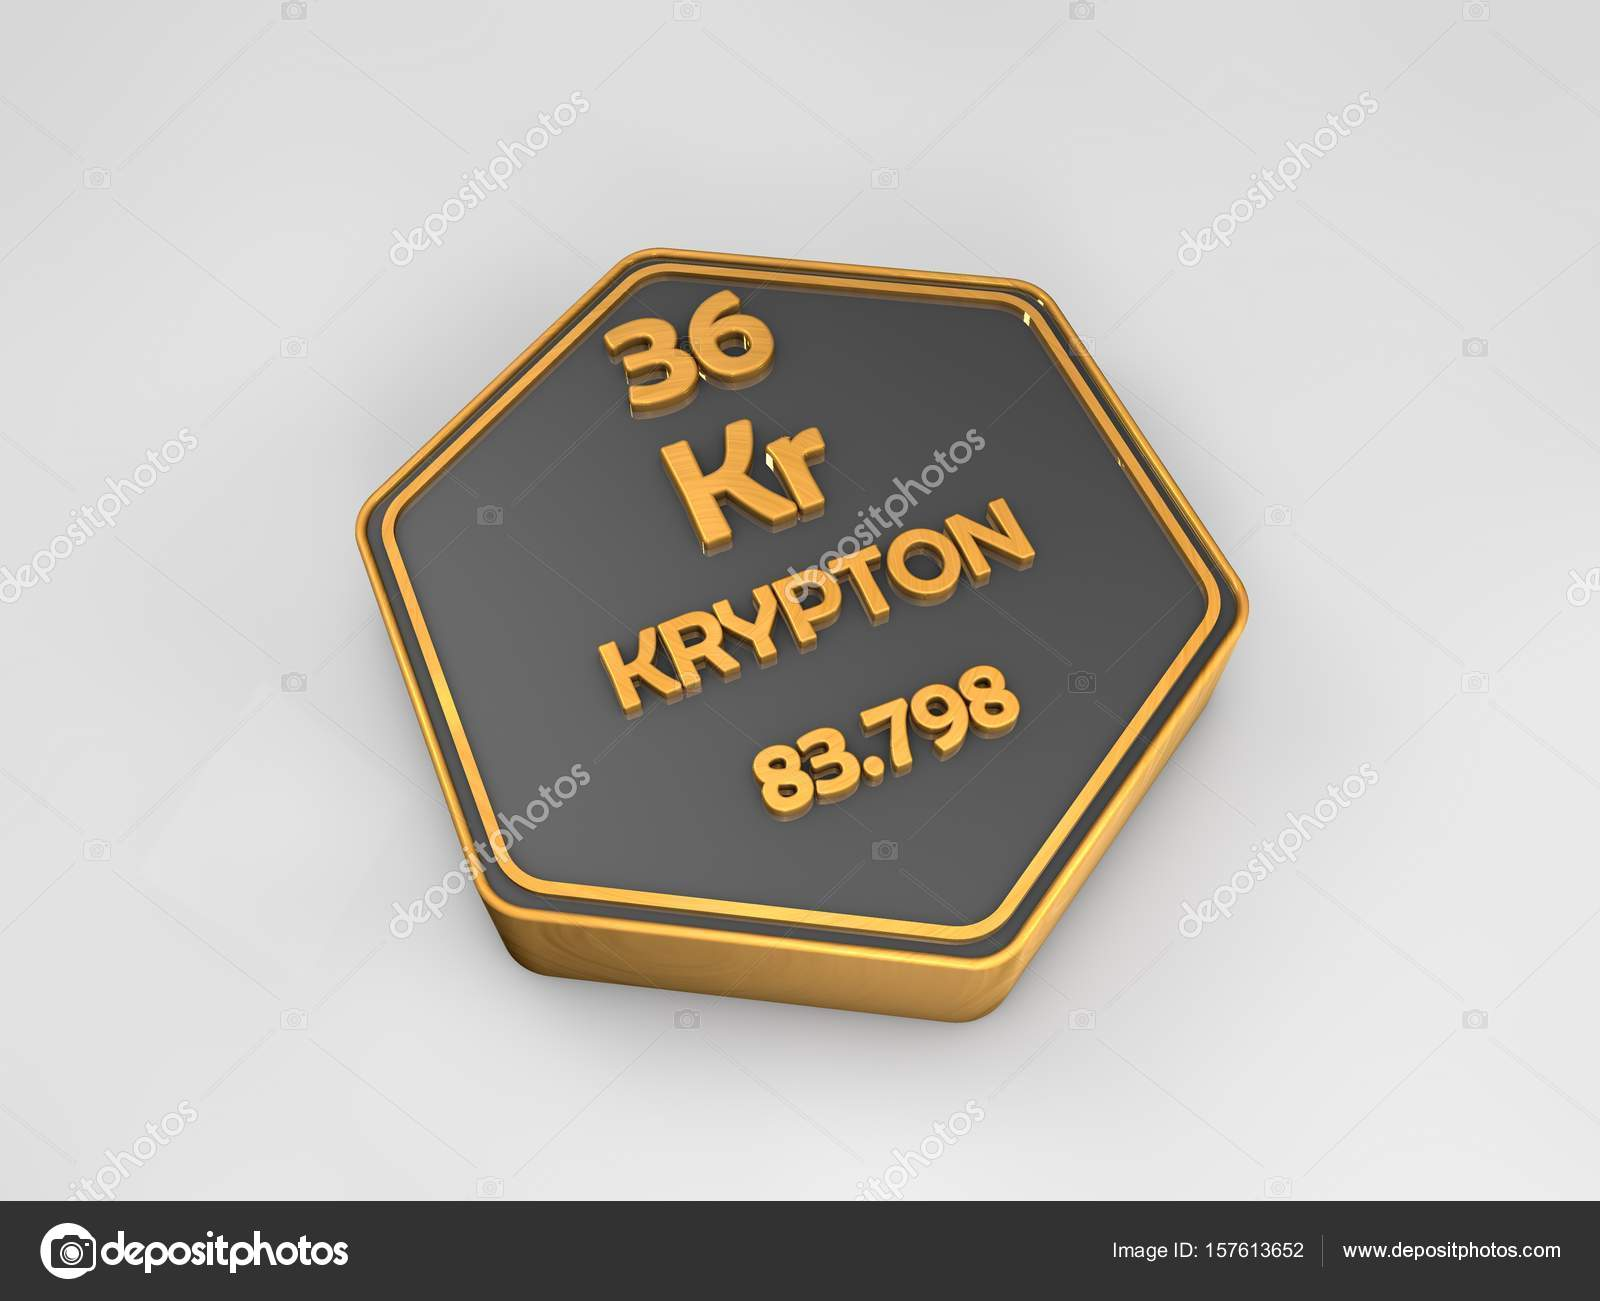 Krypton kr chemical element periodic table hexagonal shape 3d krypton kr chemical element periodic table hexagonal shape 3d render stock photo urtaz Choice Image